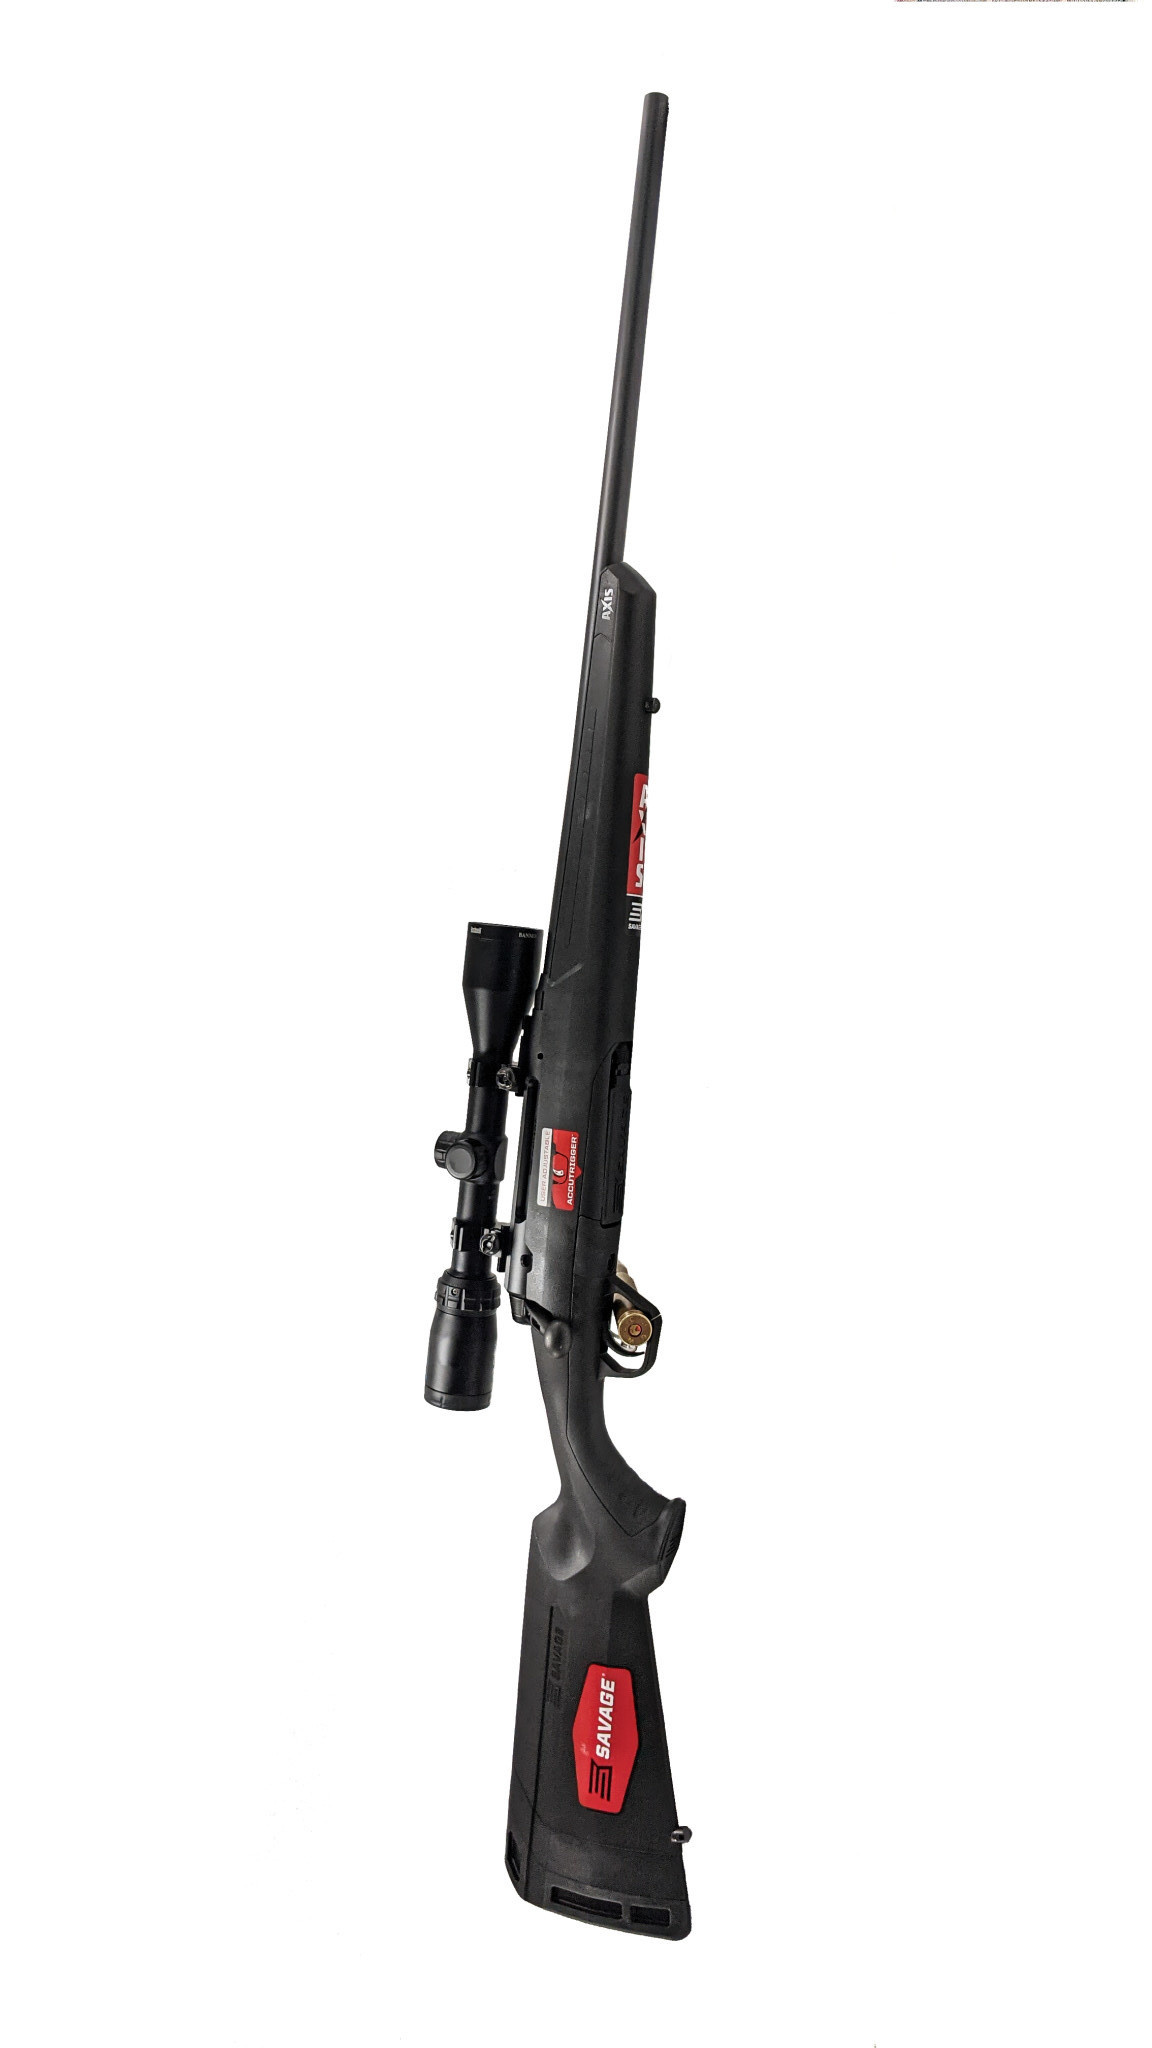 Savage Axis II XP .30-06 Spfld w/Bushnell Banner 3-9x40mm